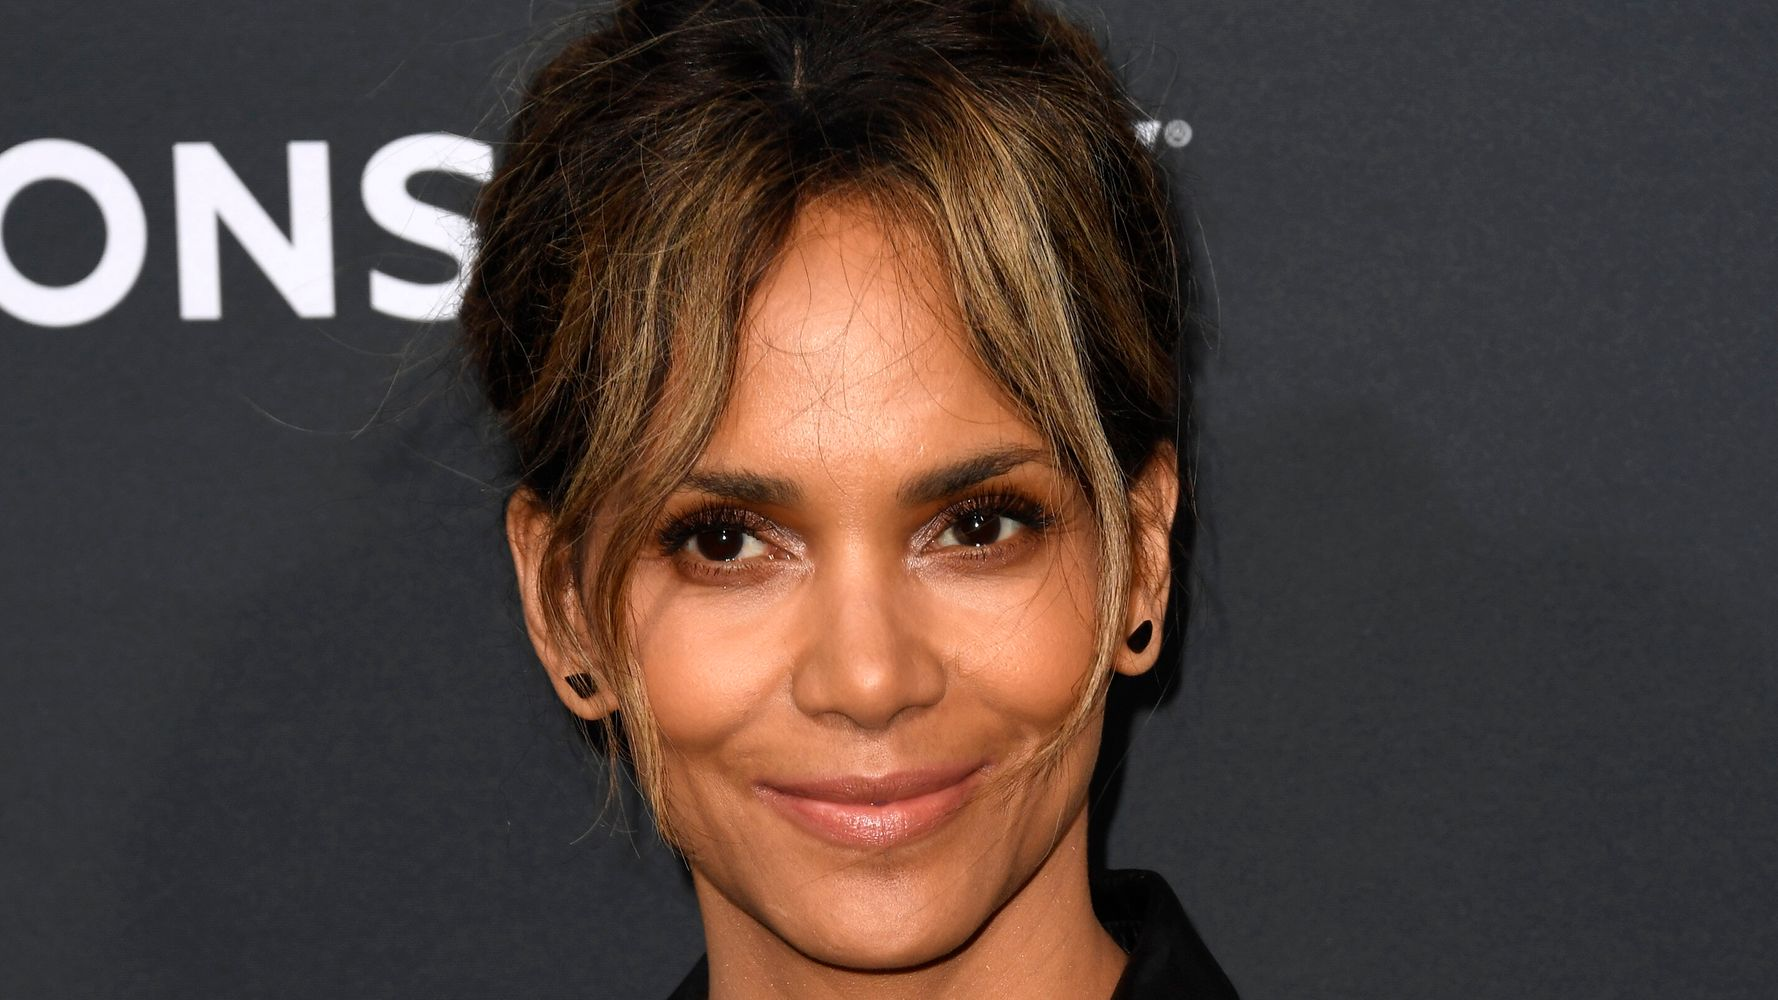 Halle Berry Talks Being Name-Dropped In Songs: I'm 'Flattered' I'm Still Remembered